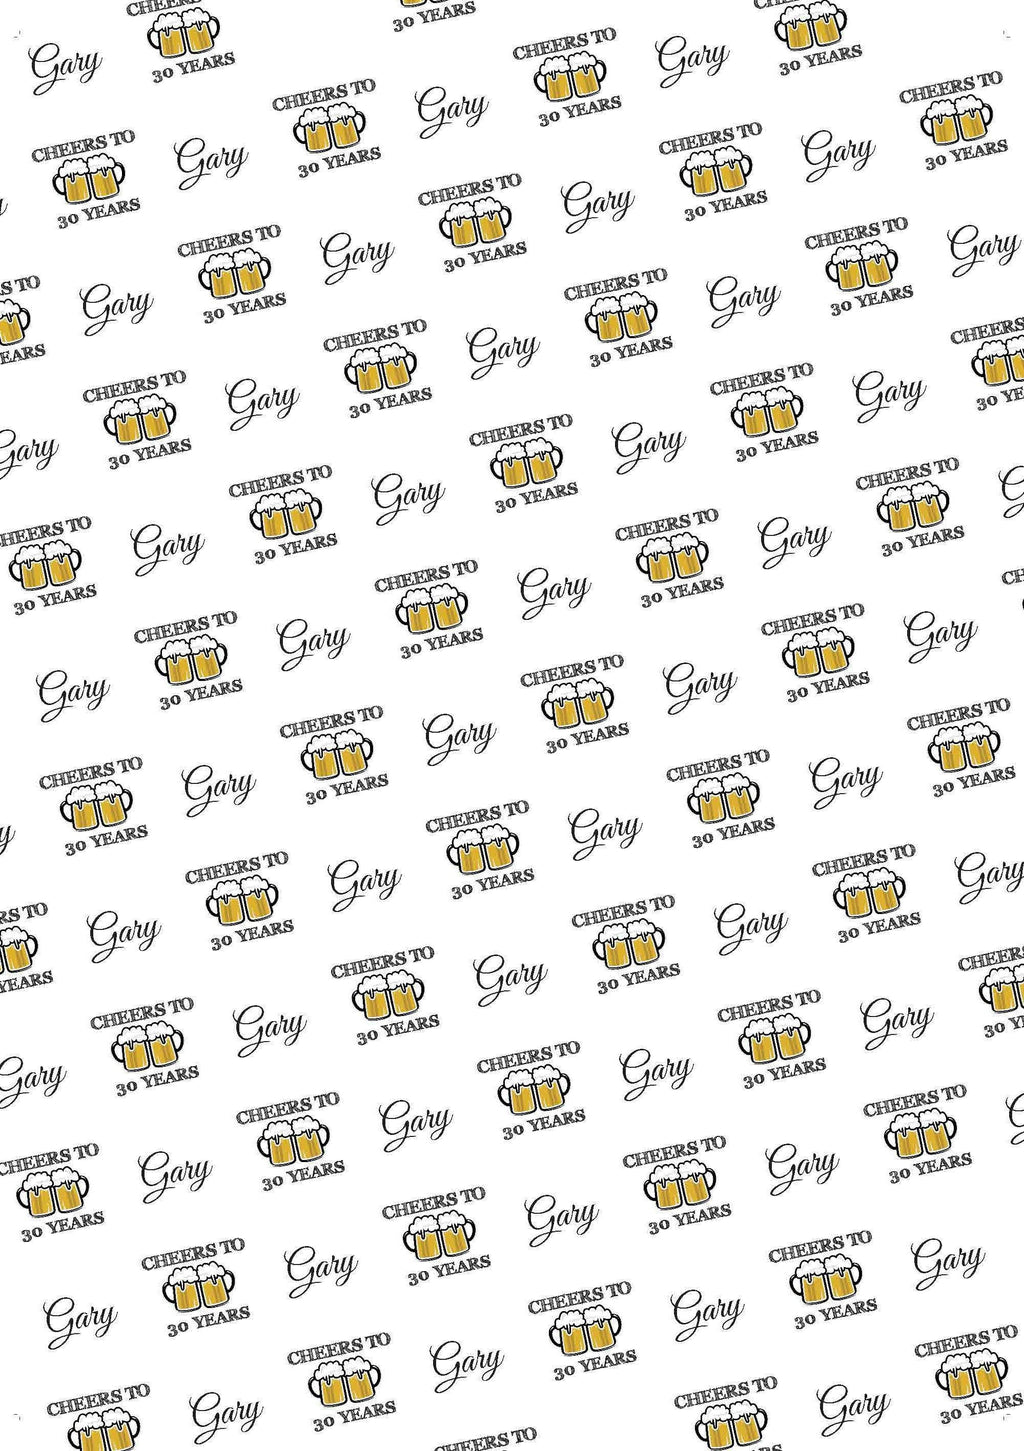 30th Birthday Cheers Personalized Birthday Gift Wrap - Potter's Printing